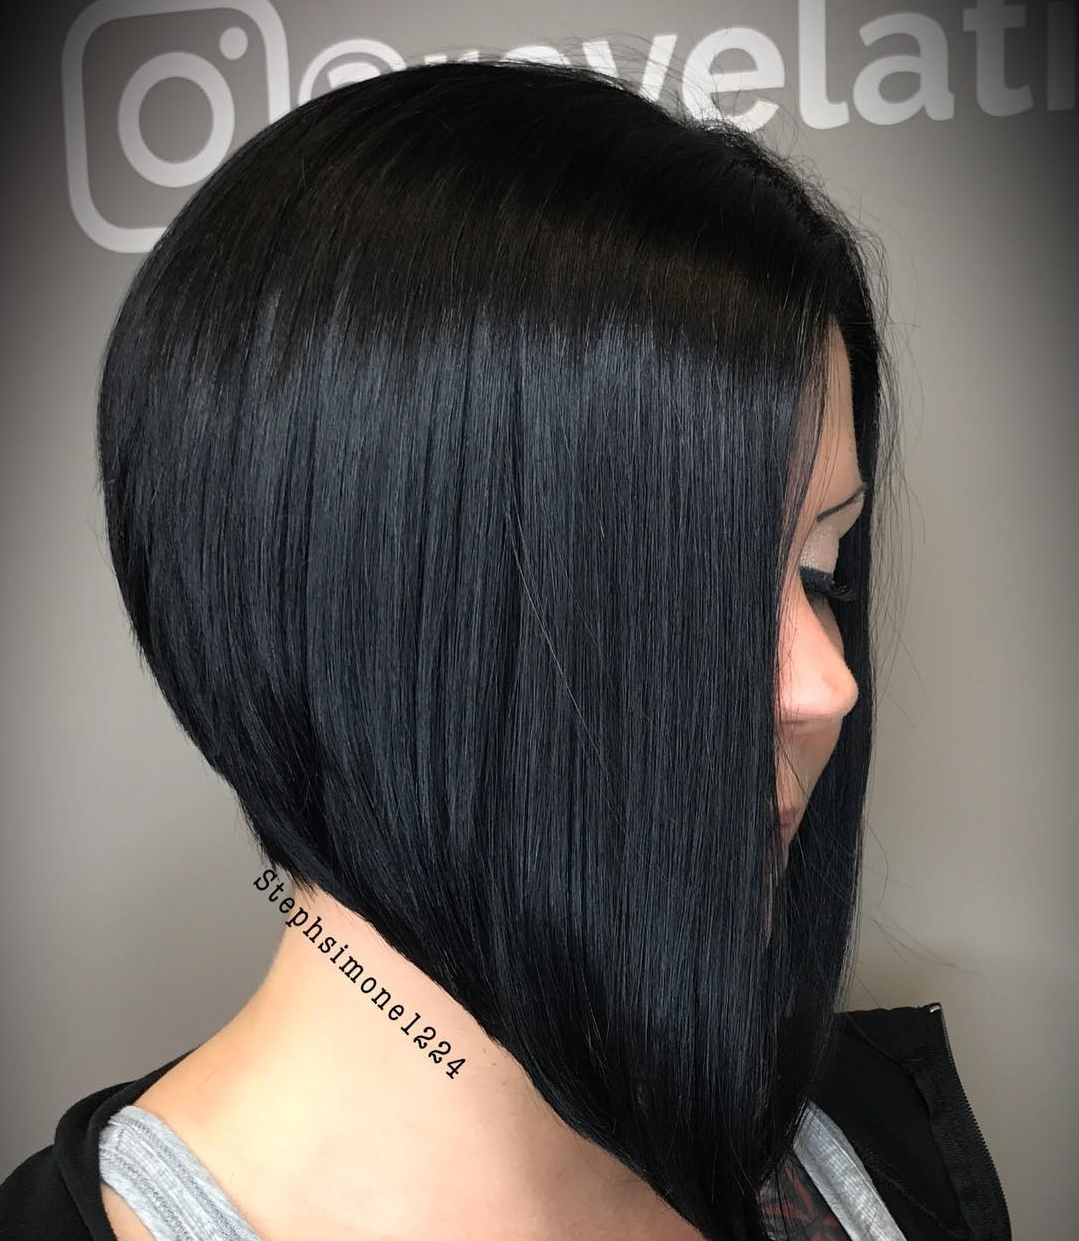 Sleek Black Blunt Stacked Bob